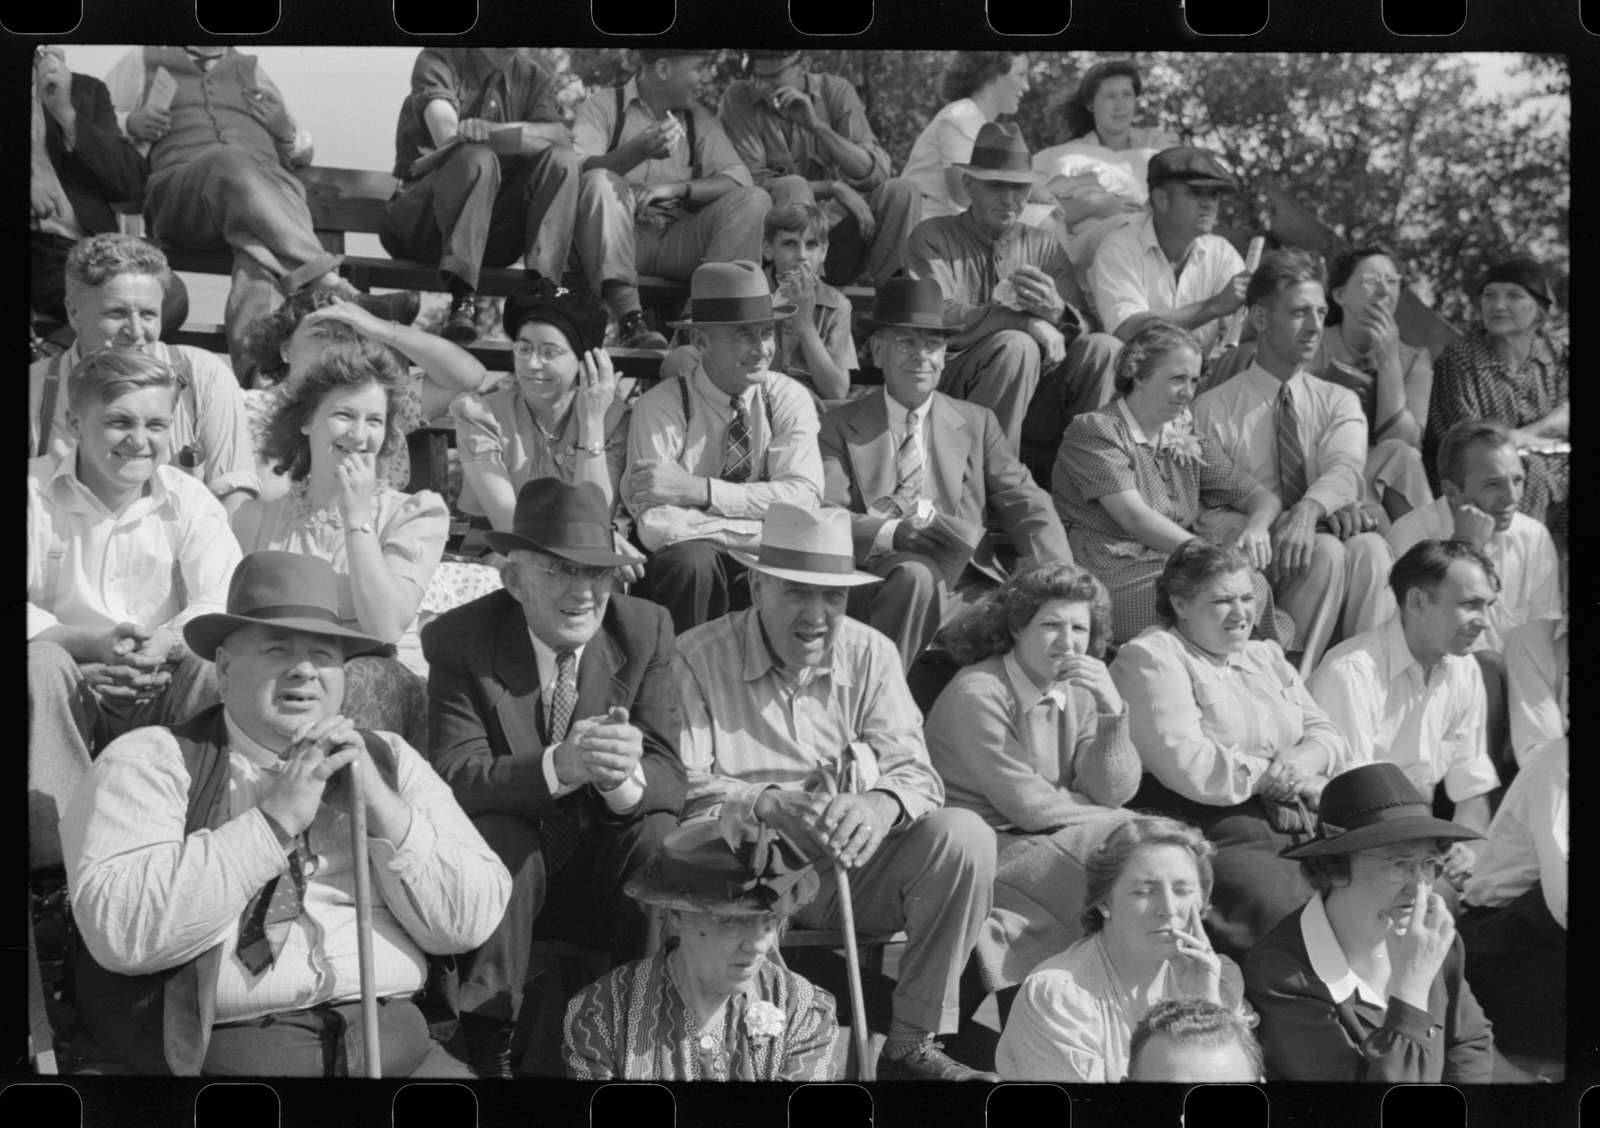 Spectators at the sulky races at the Rutland Fair, Vermont